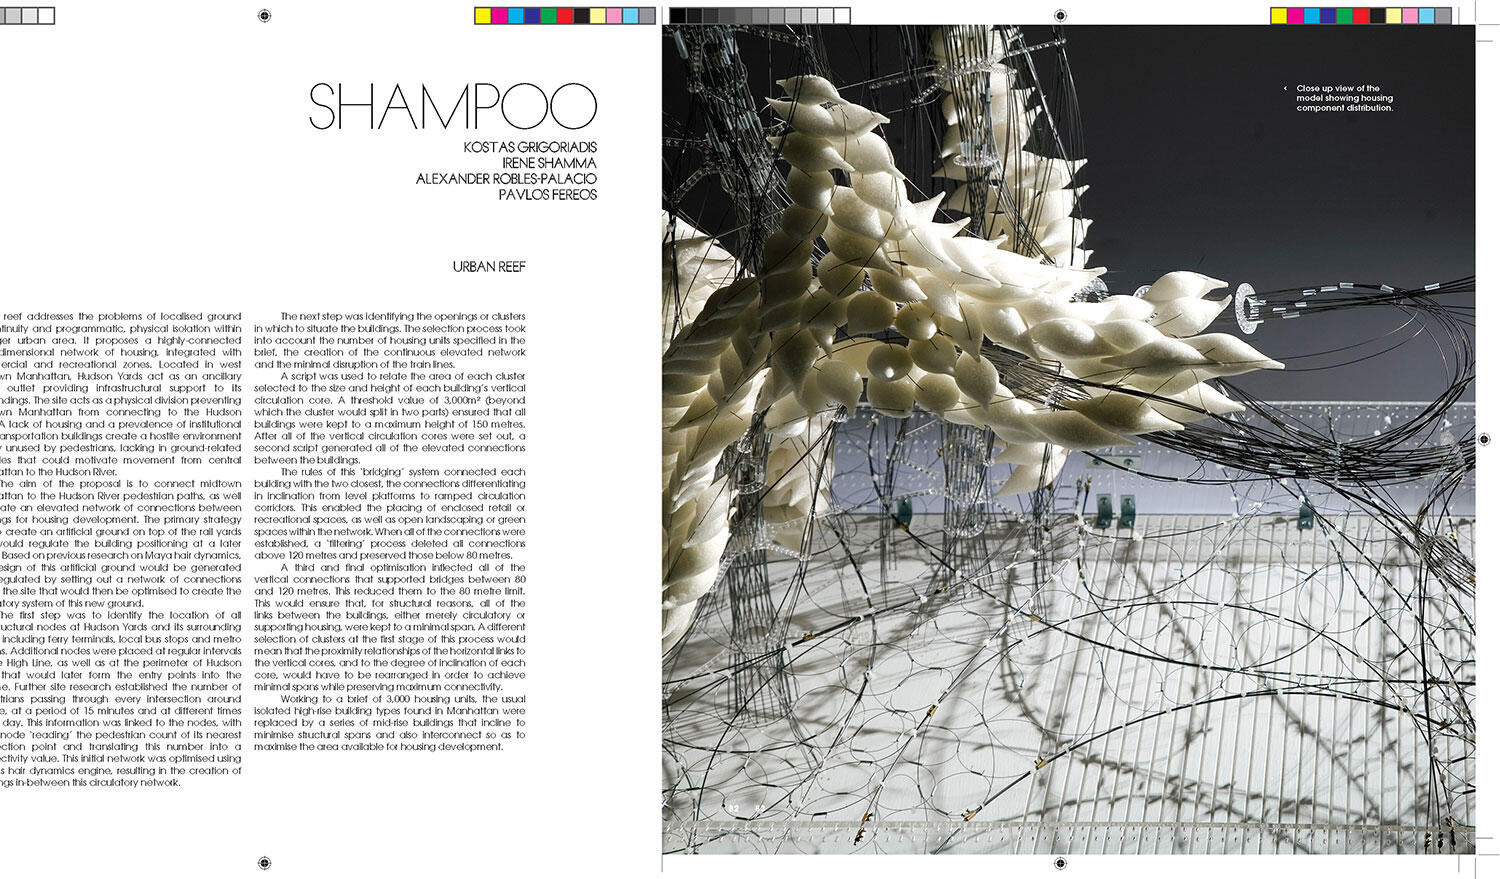 ///Shampoo have work published at: Glynn, R. and Shafiei, S. eds., 2009. Digital Architecture: Passages through Hinterlands. Wembley: Ruairi Glynn///